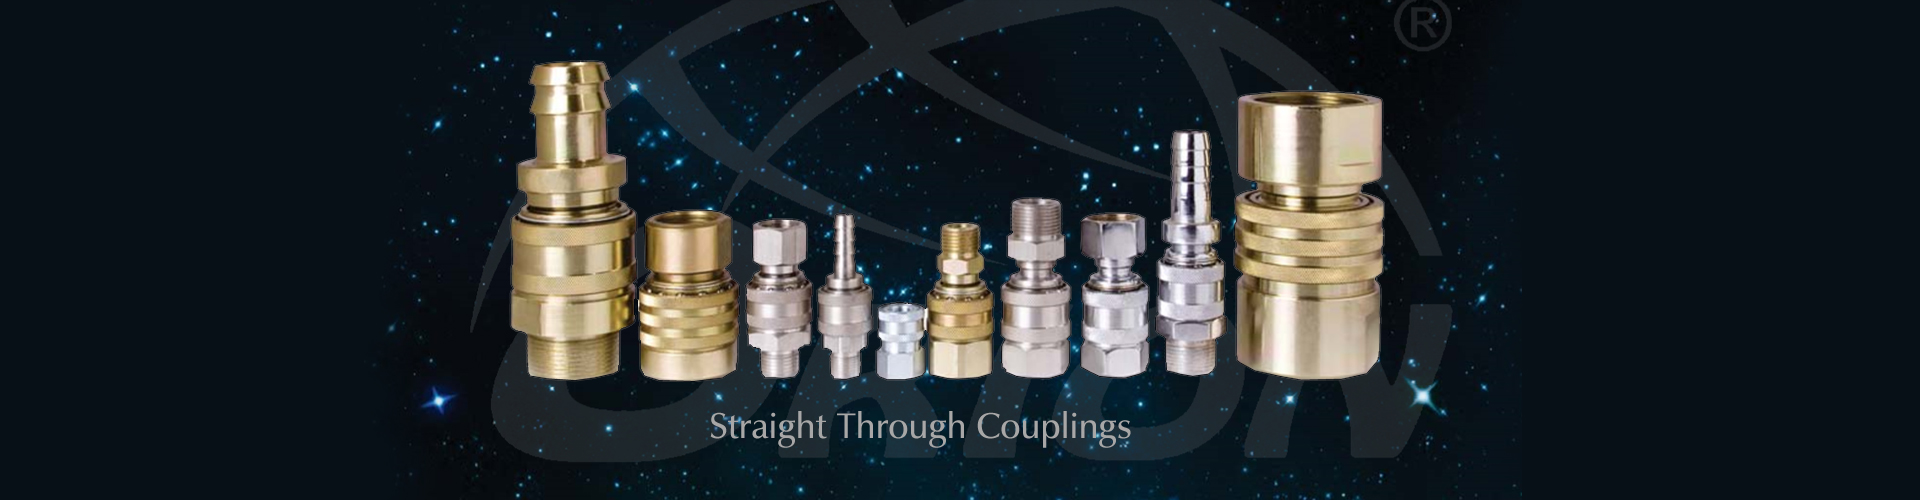 straight through couplings